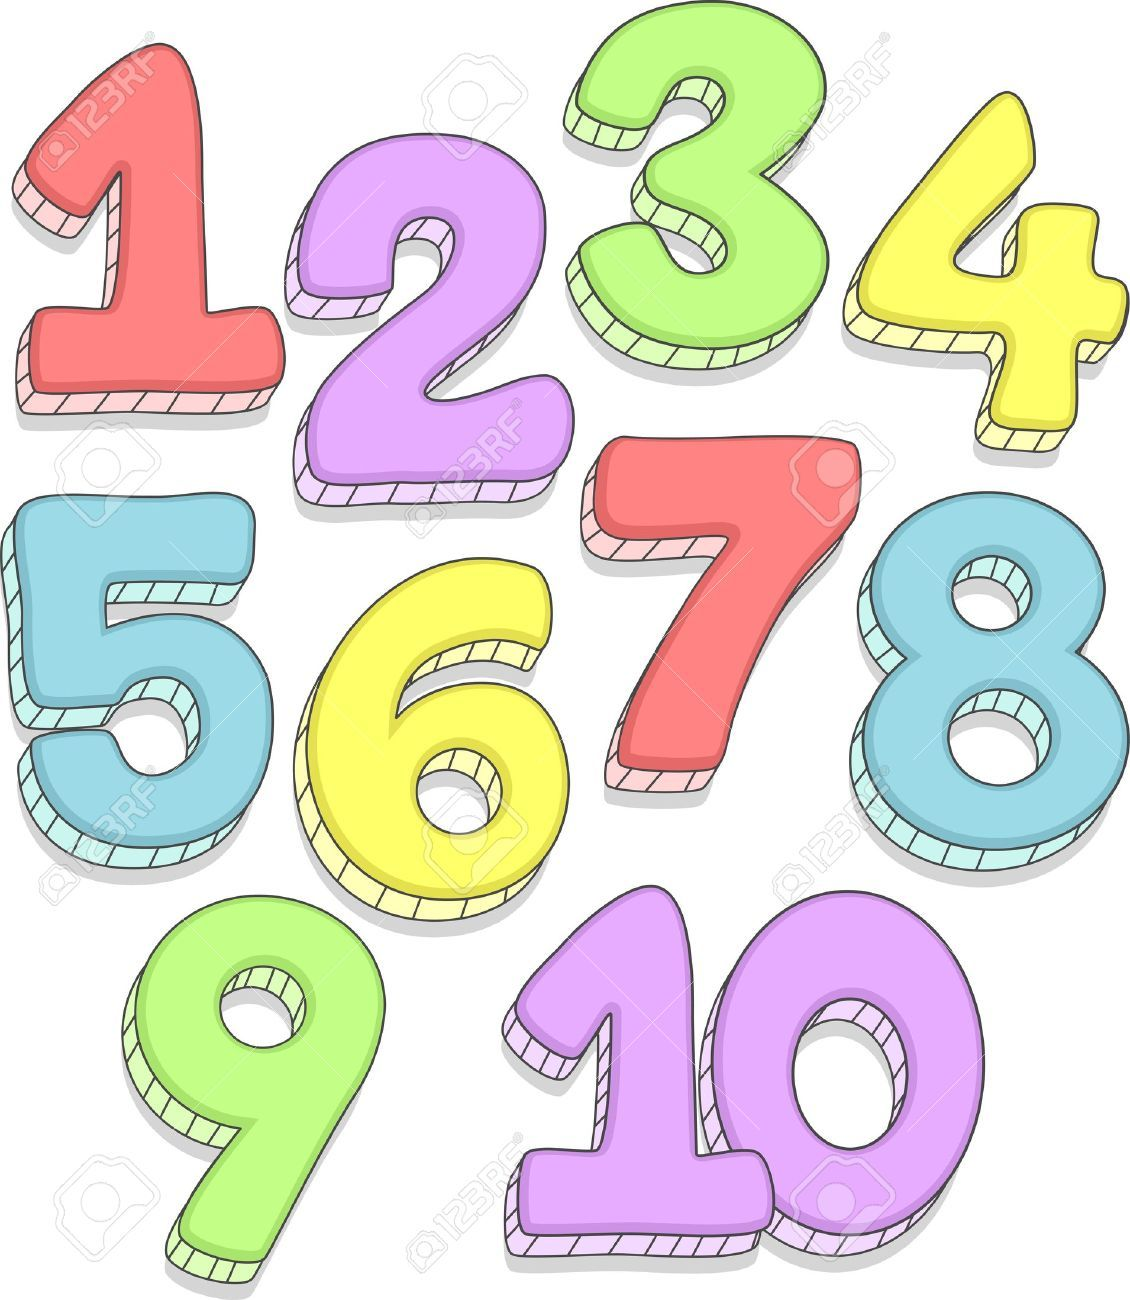 Cartoon Numbers 1 10 The Numbers 1 10 Stock Illustration